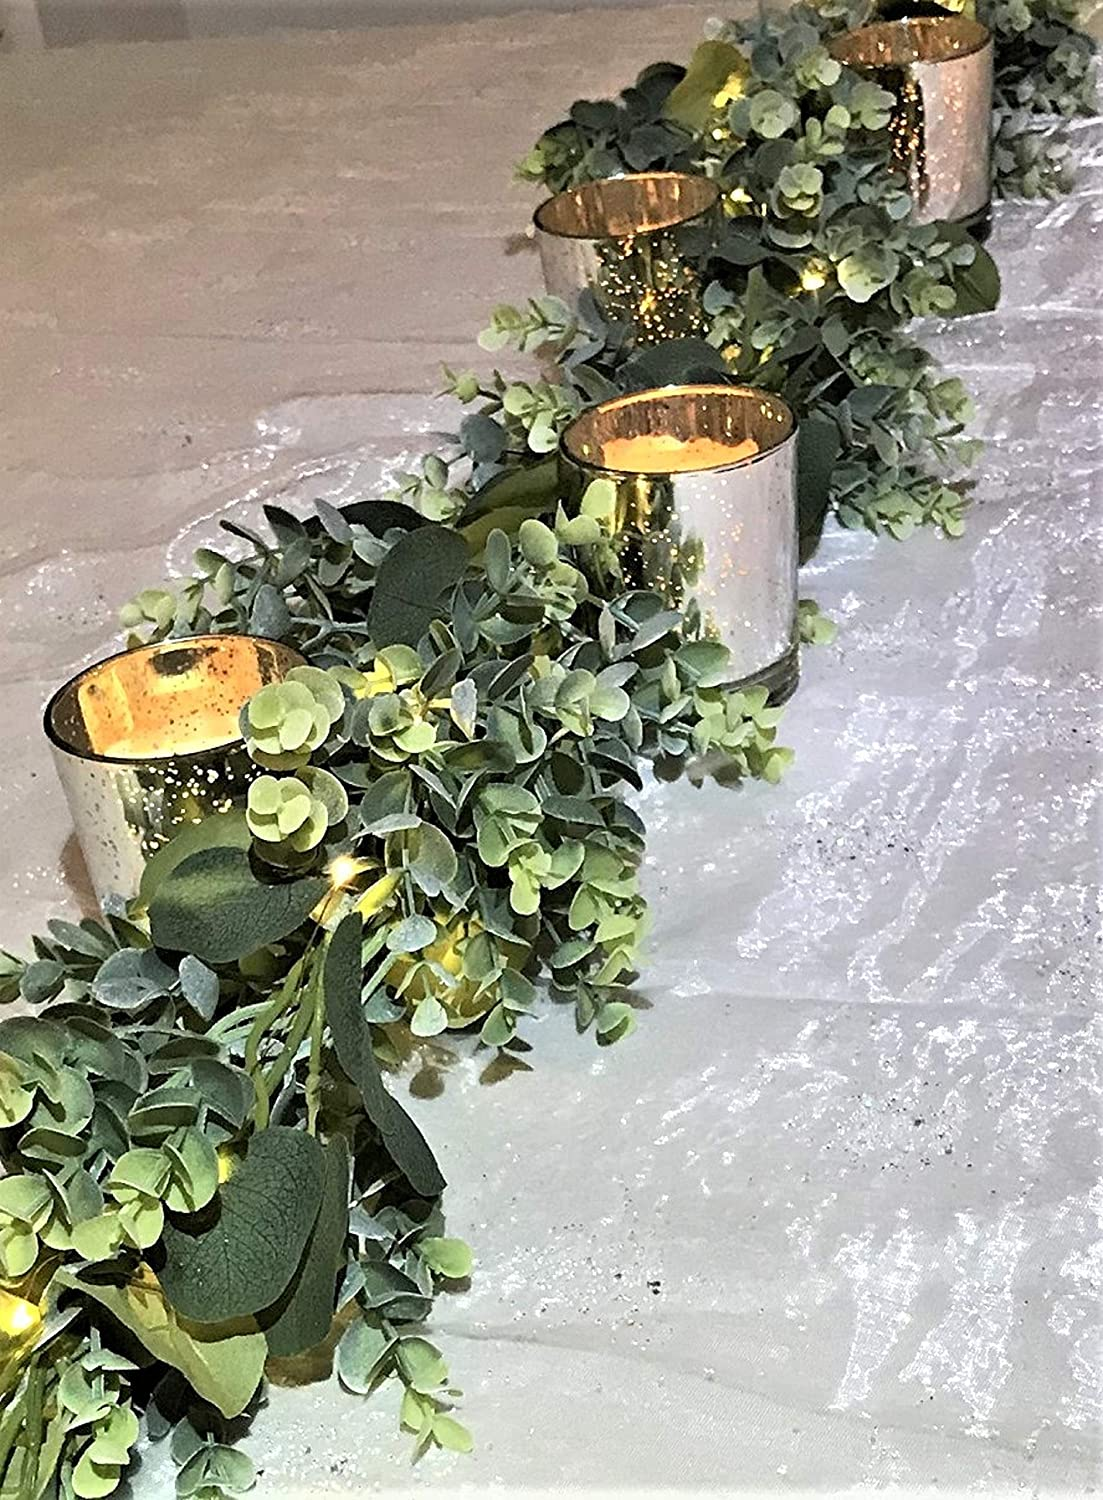 Smancy Eucalyptus Garland Greenery with Fairy Lights battery operated Rustic Wedding Decor Artificial Silver Dollar Eucalyptus Greenery Garland for Wedding Arch Table Runner Events Farmhouse Mantle 6'